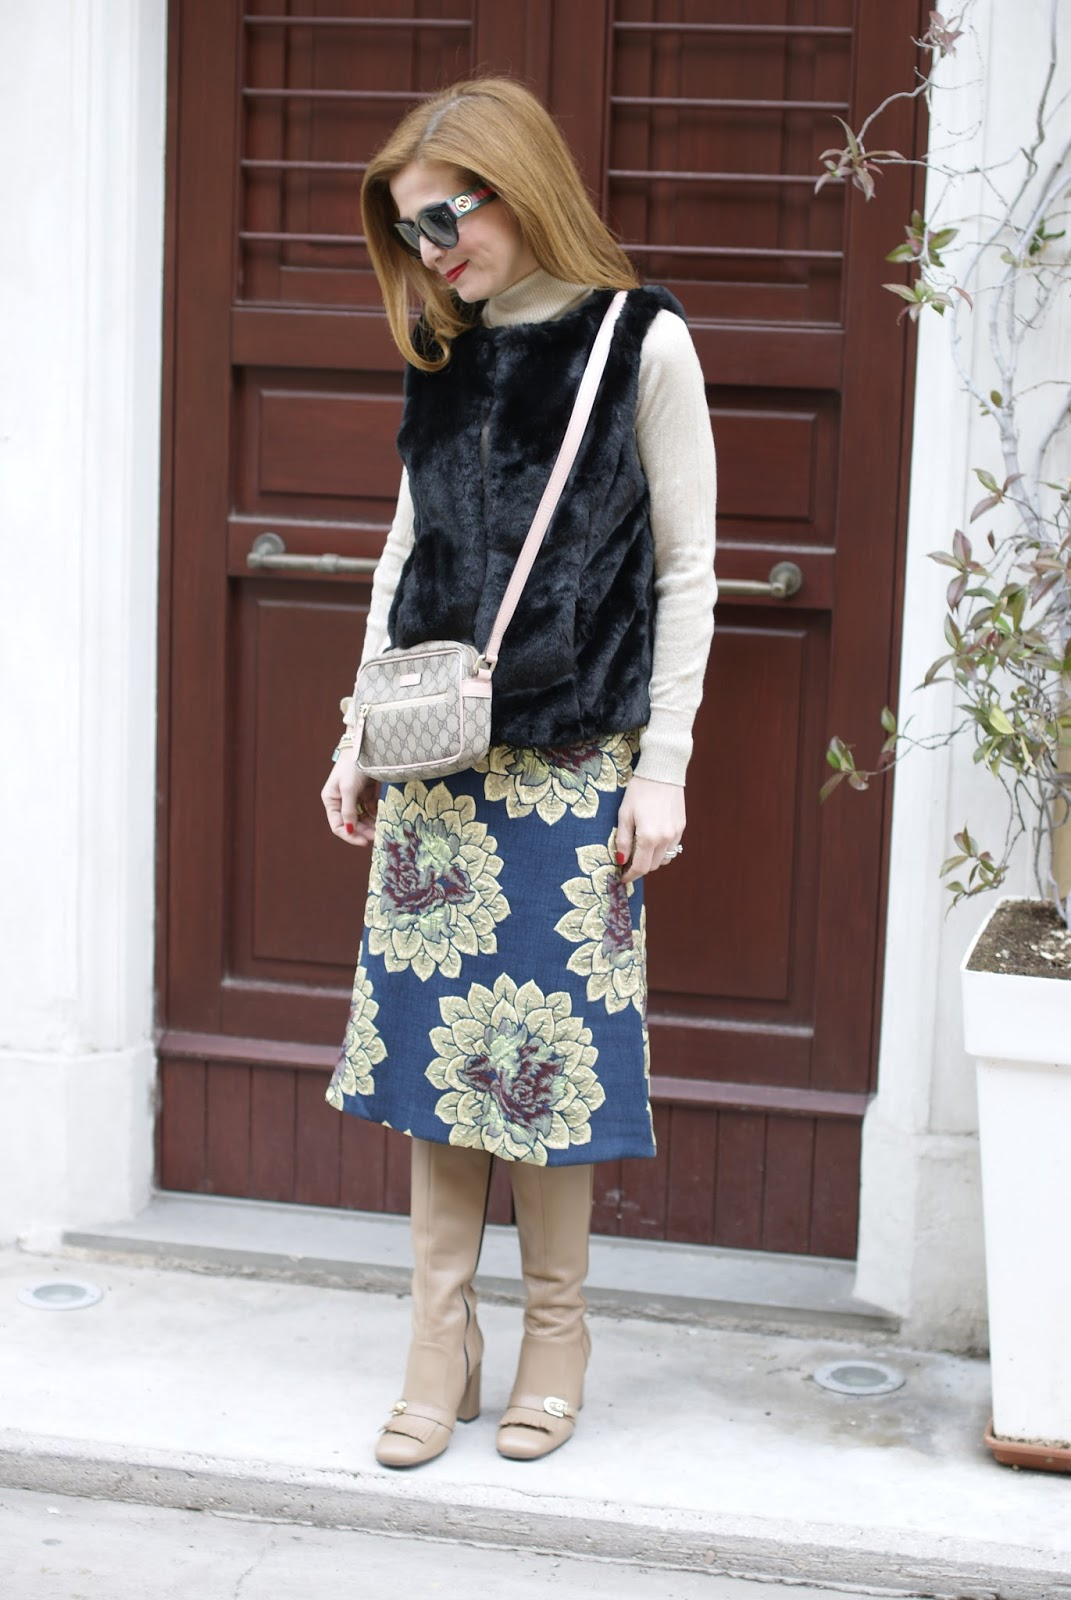 floral tapestry skirt and faux fur vest, Giovanni Fabiani boots on Fashion and Cookies fashion blog, fashion blogger style